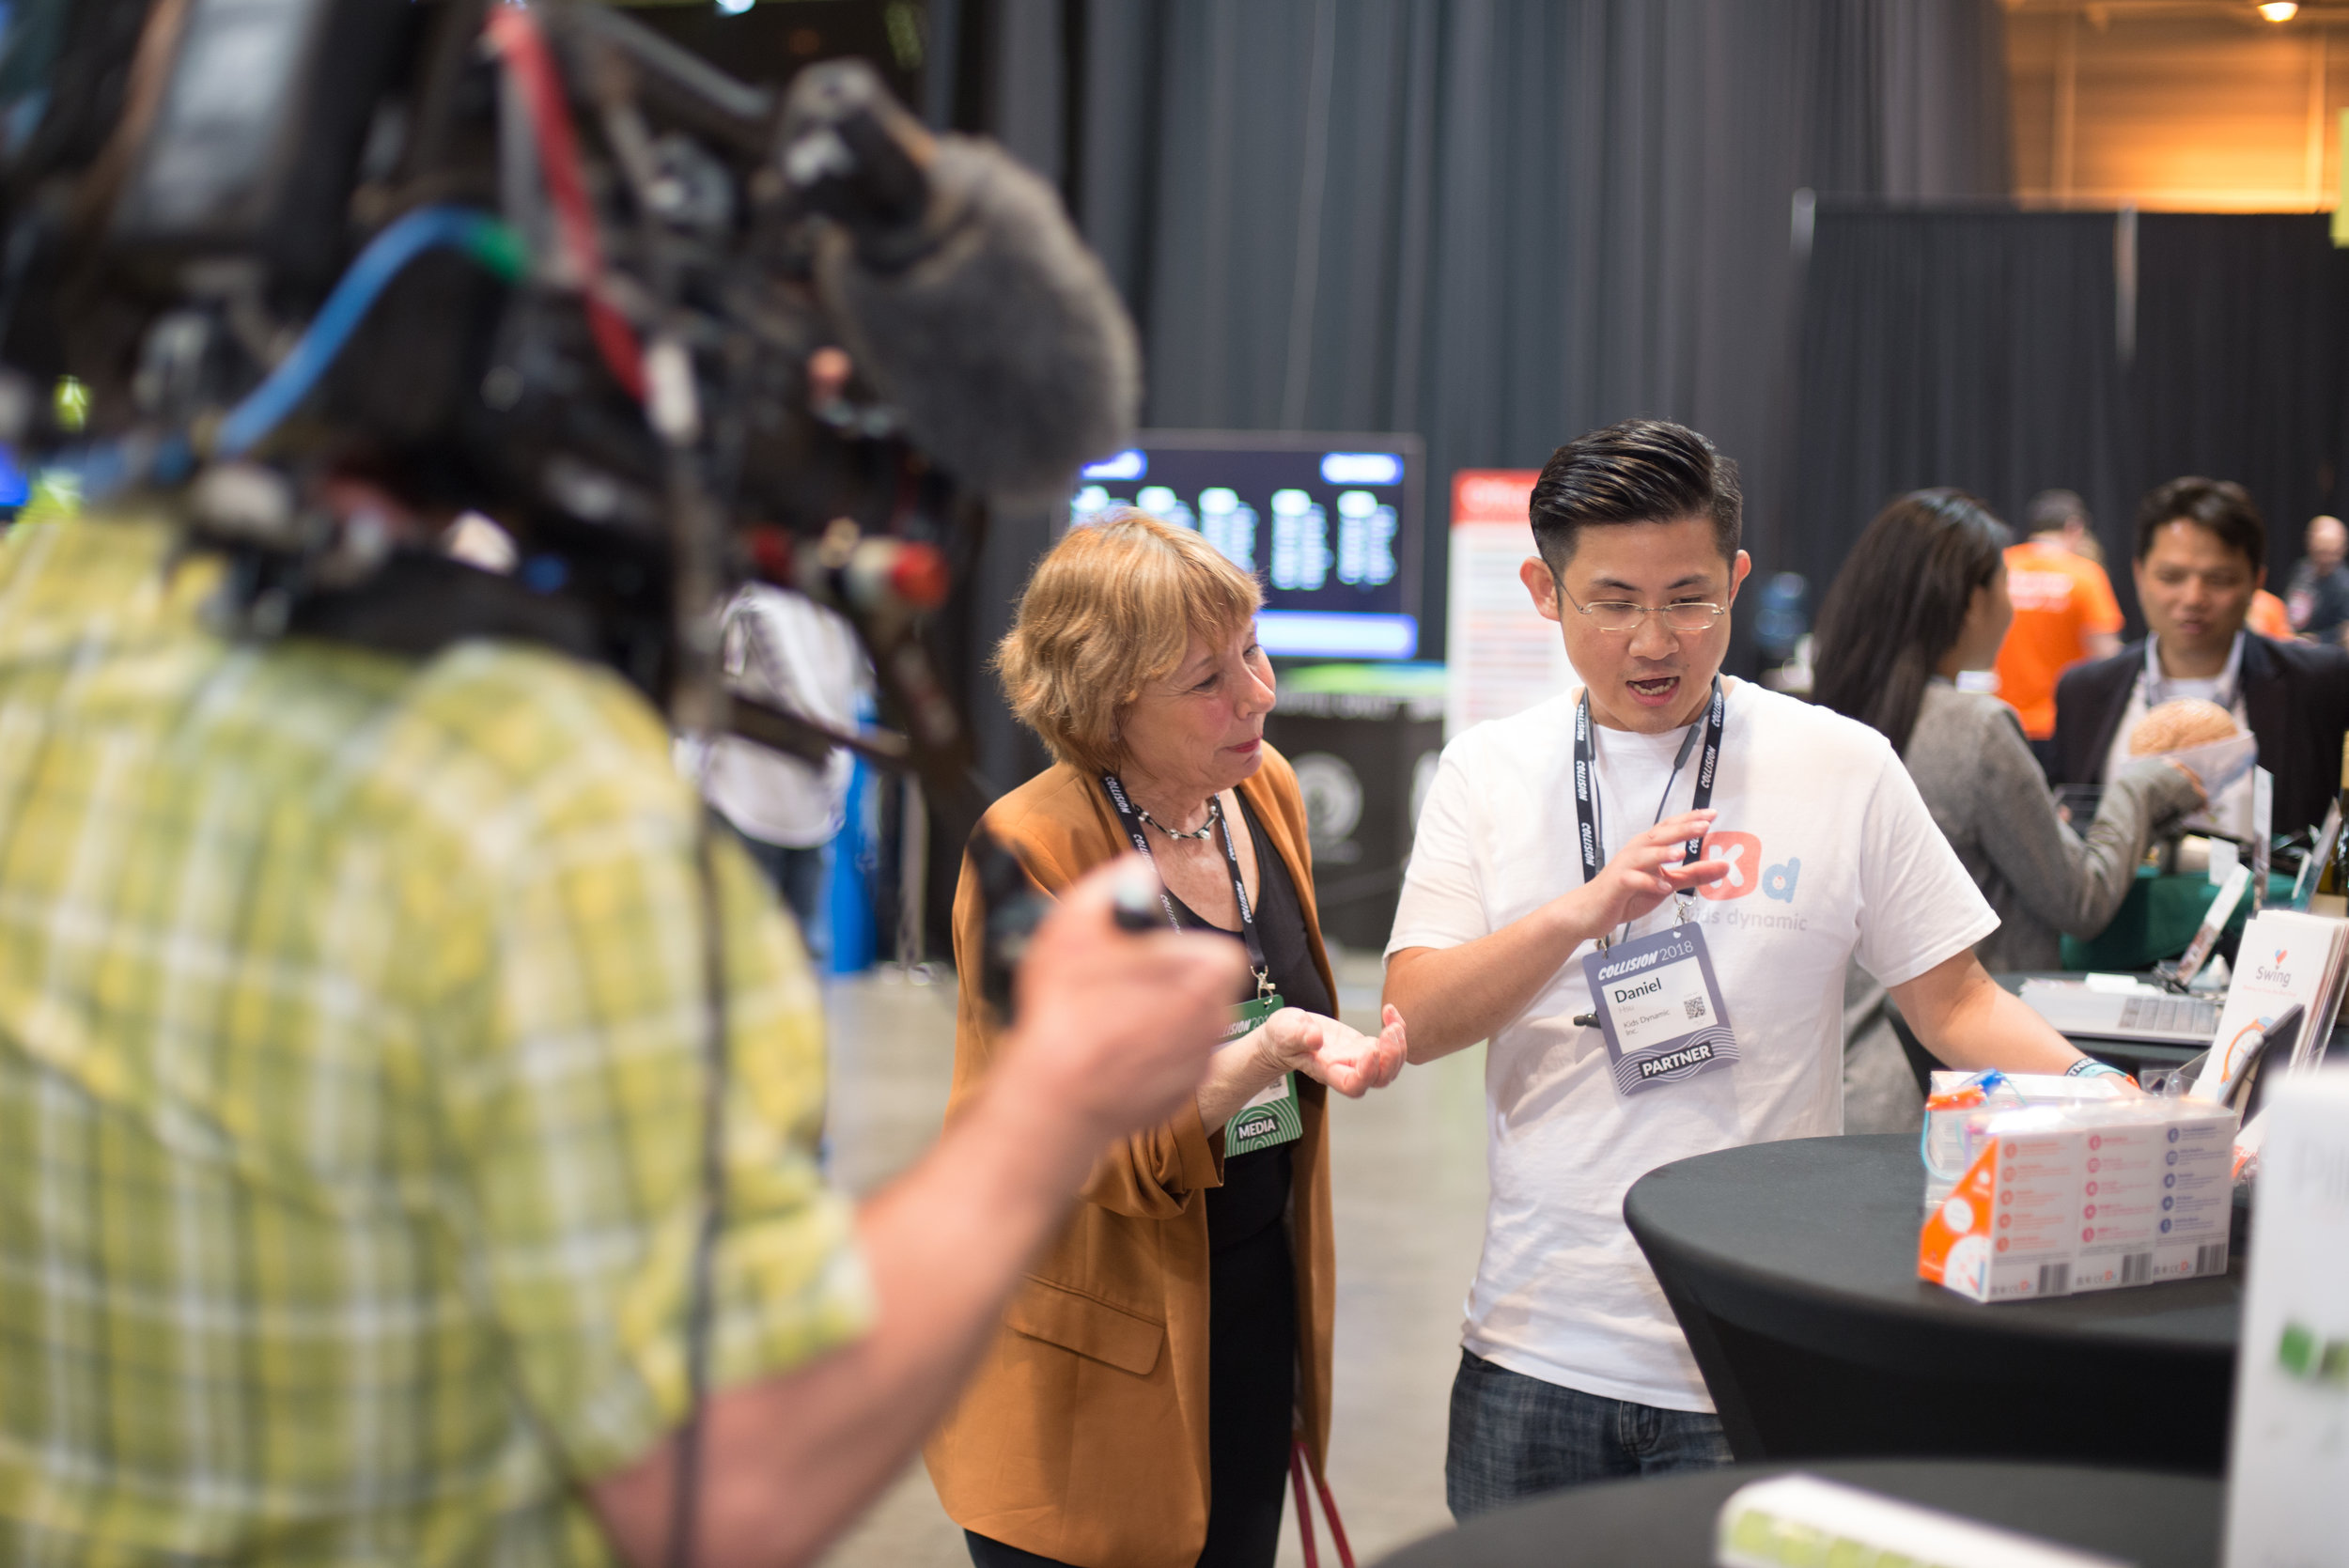 Kids Dynamics, one of the 2018 TSS USA trip startup team representative, being interviewed by journalist during Collision 2018, New Orleans